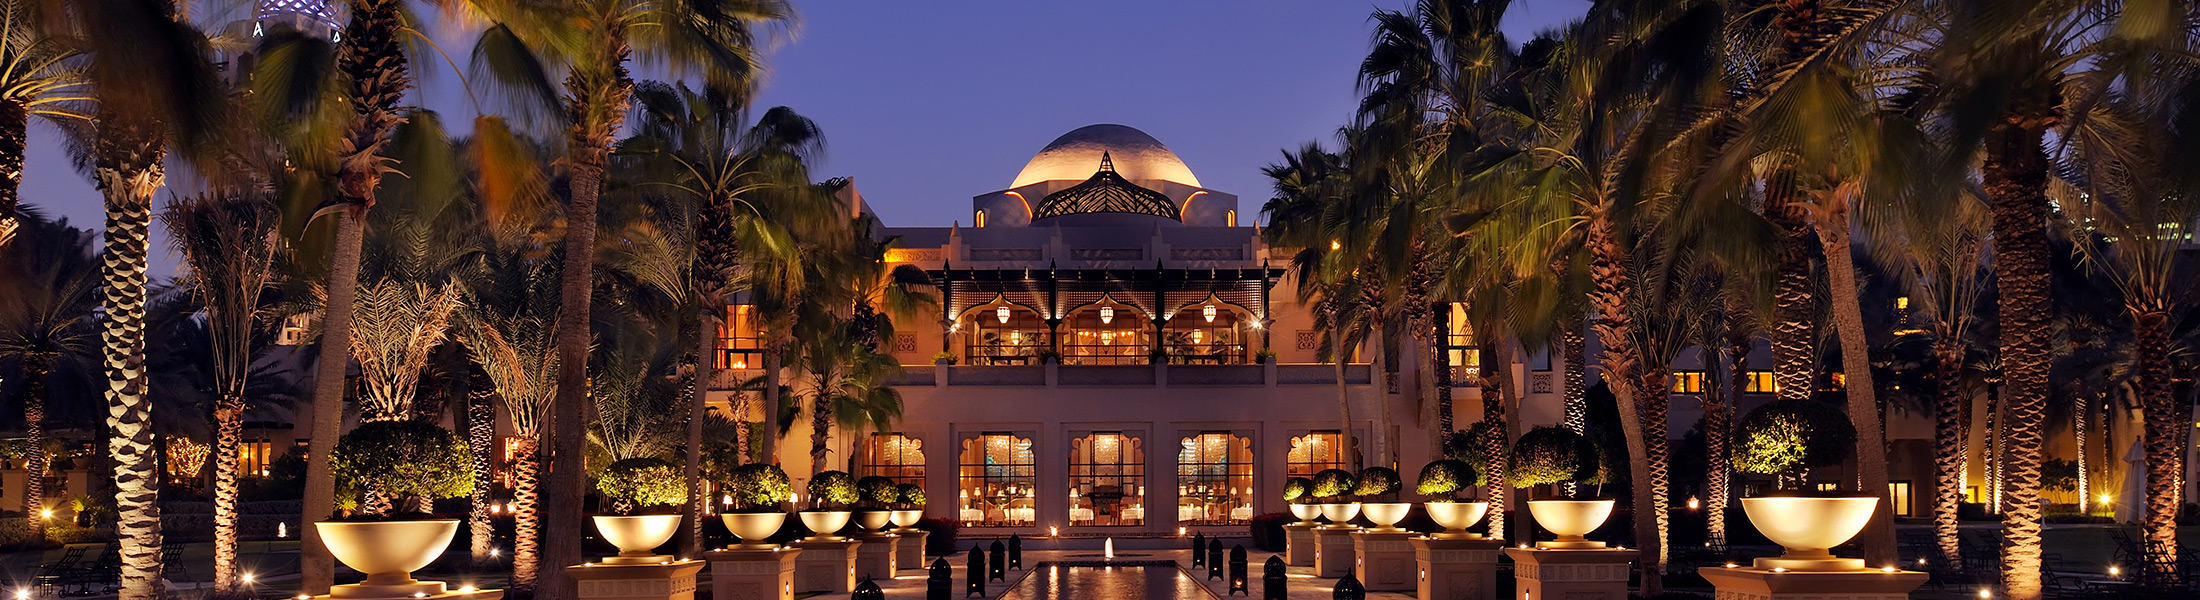 Exterior of One&Only Royal Mirage The Palace at night